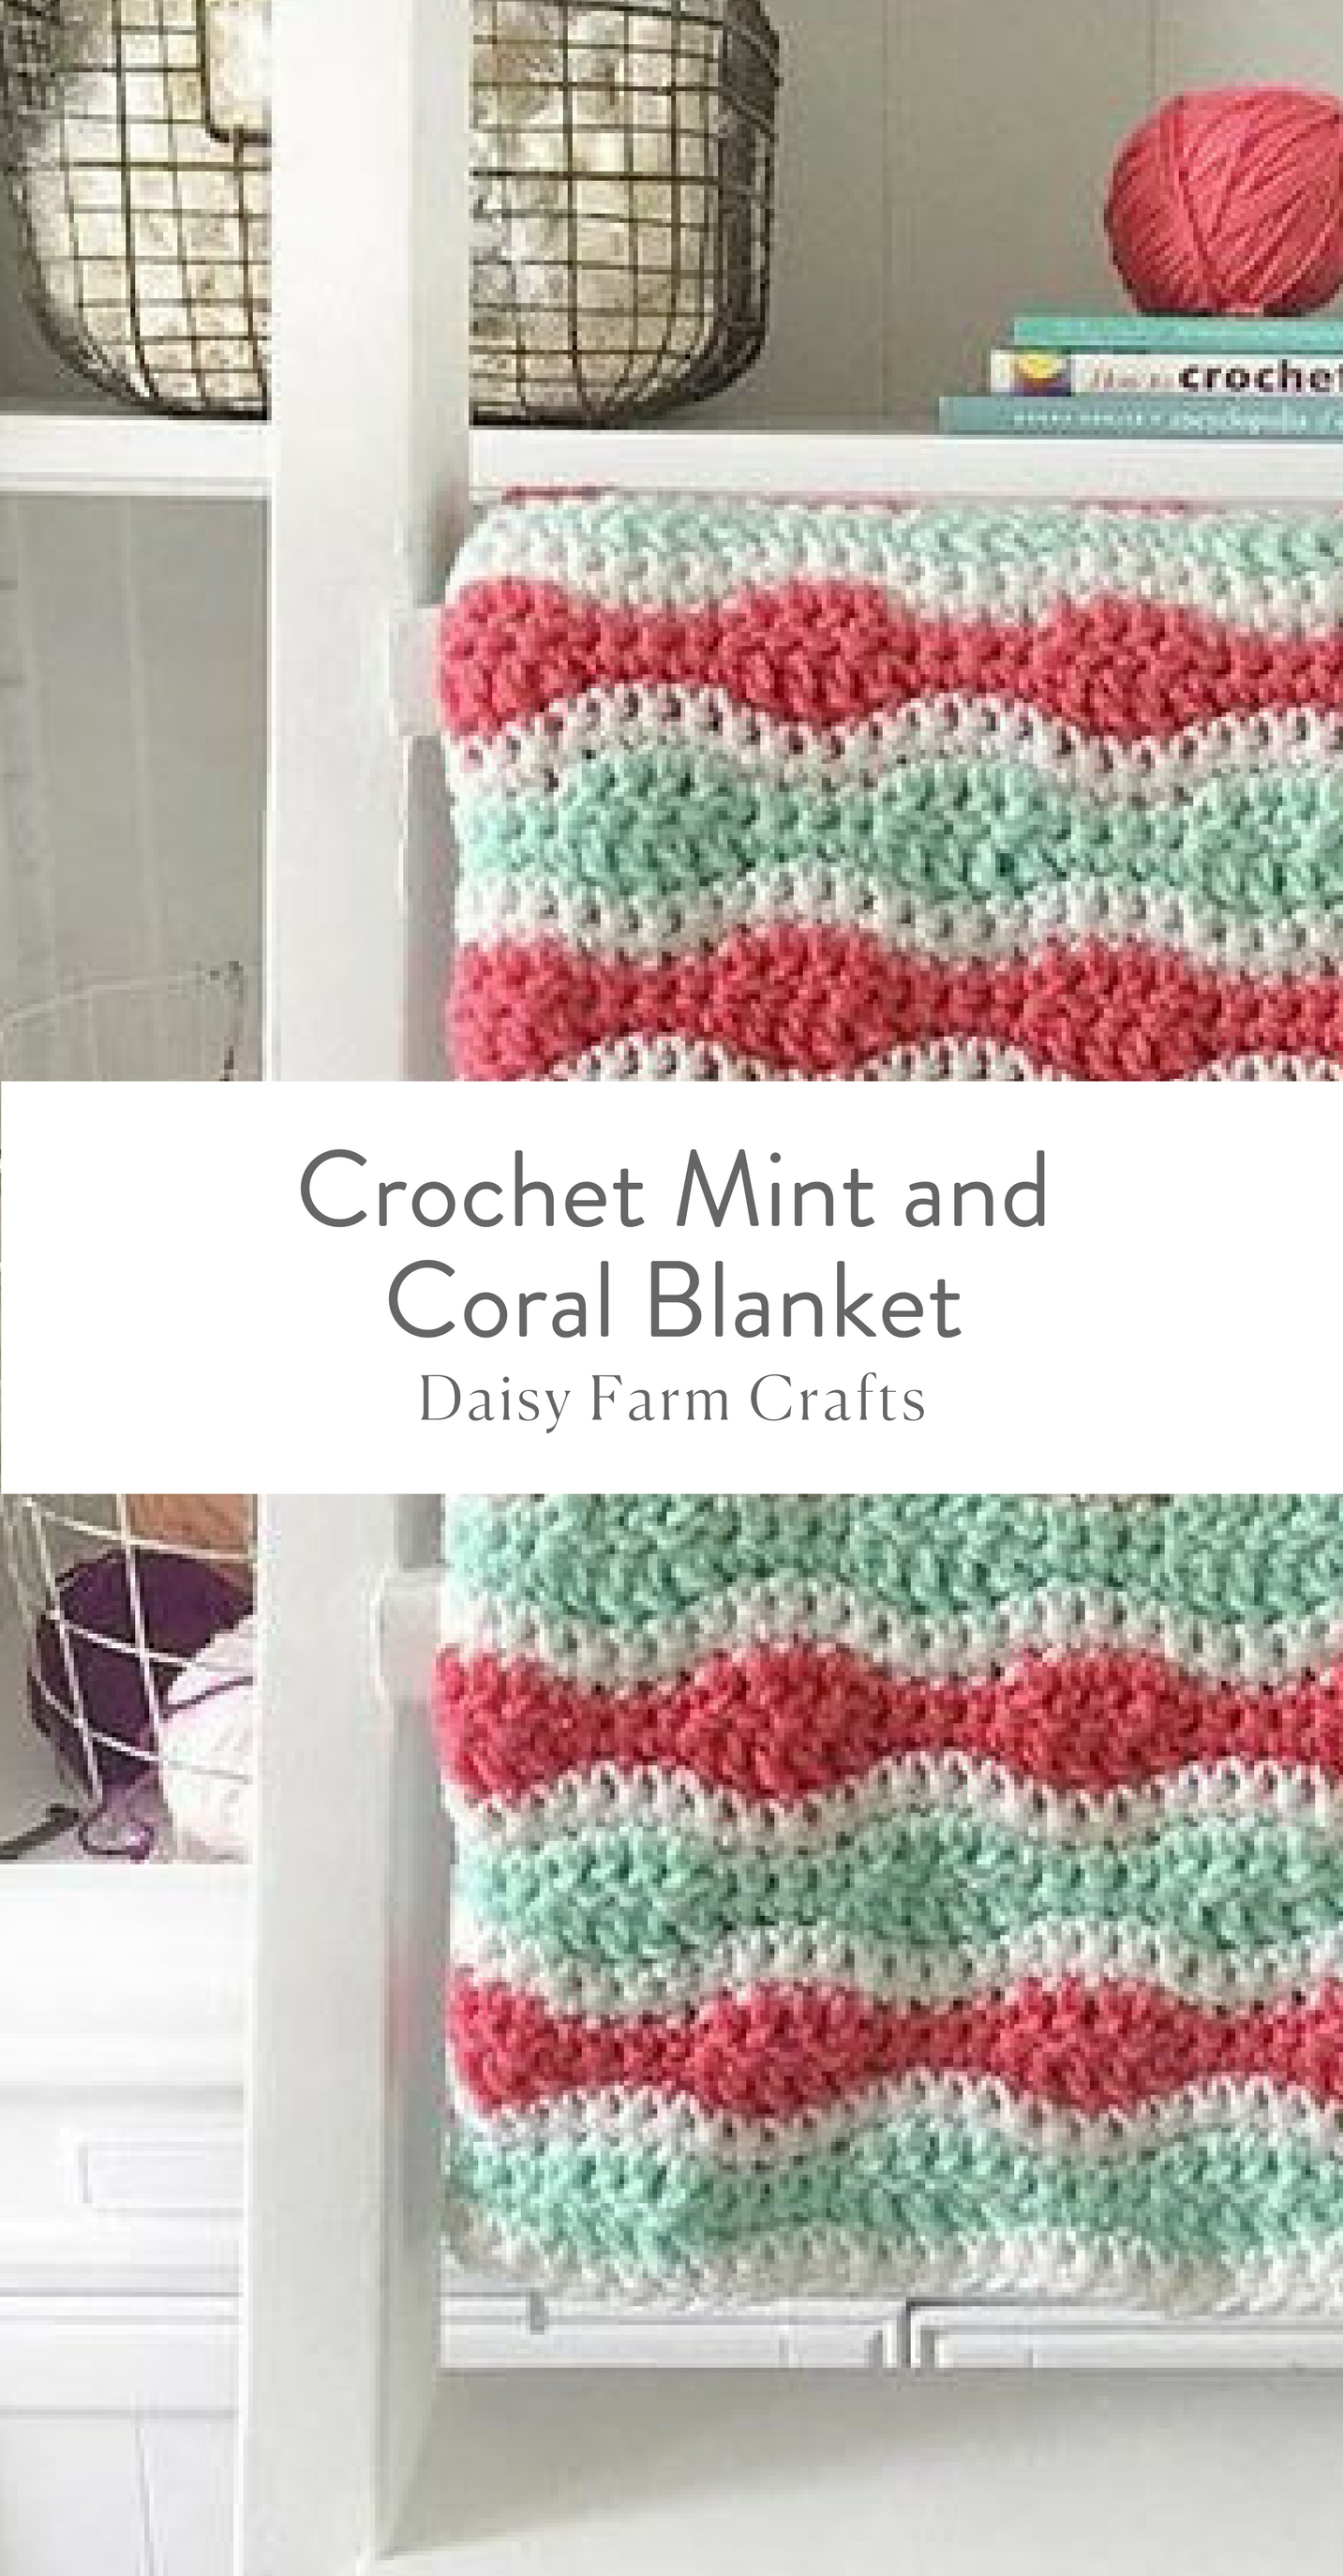 Free Pattern - Crochet Mint and Coral Blanket | crafts | Pinterest ...